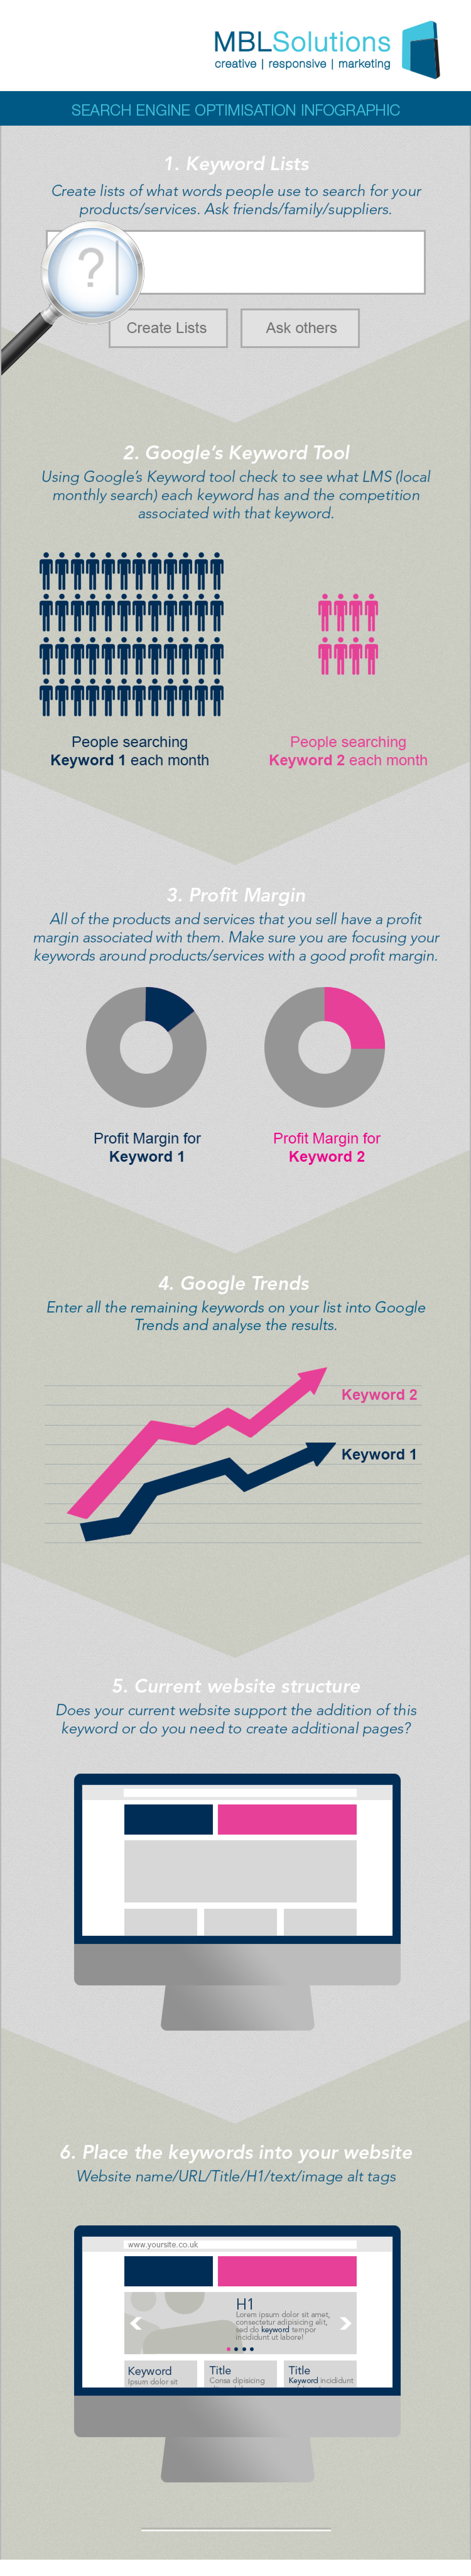 Search Engine Optimisation Infographic Infographic